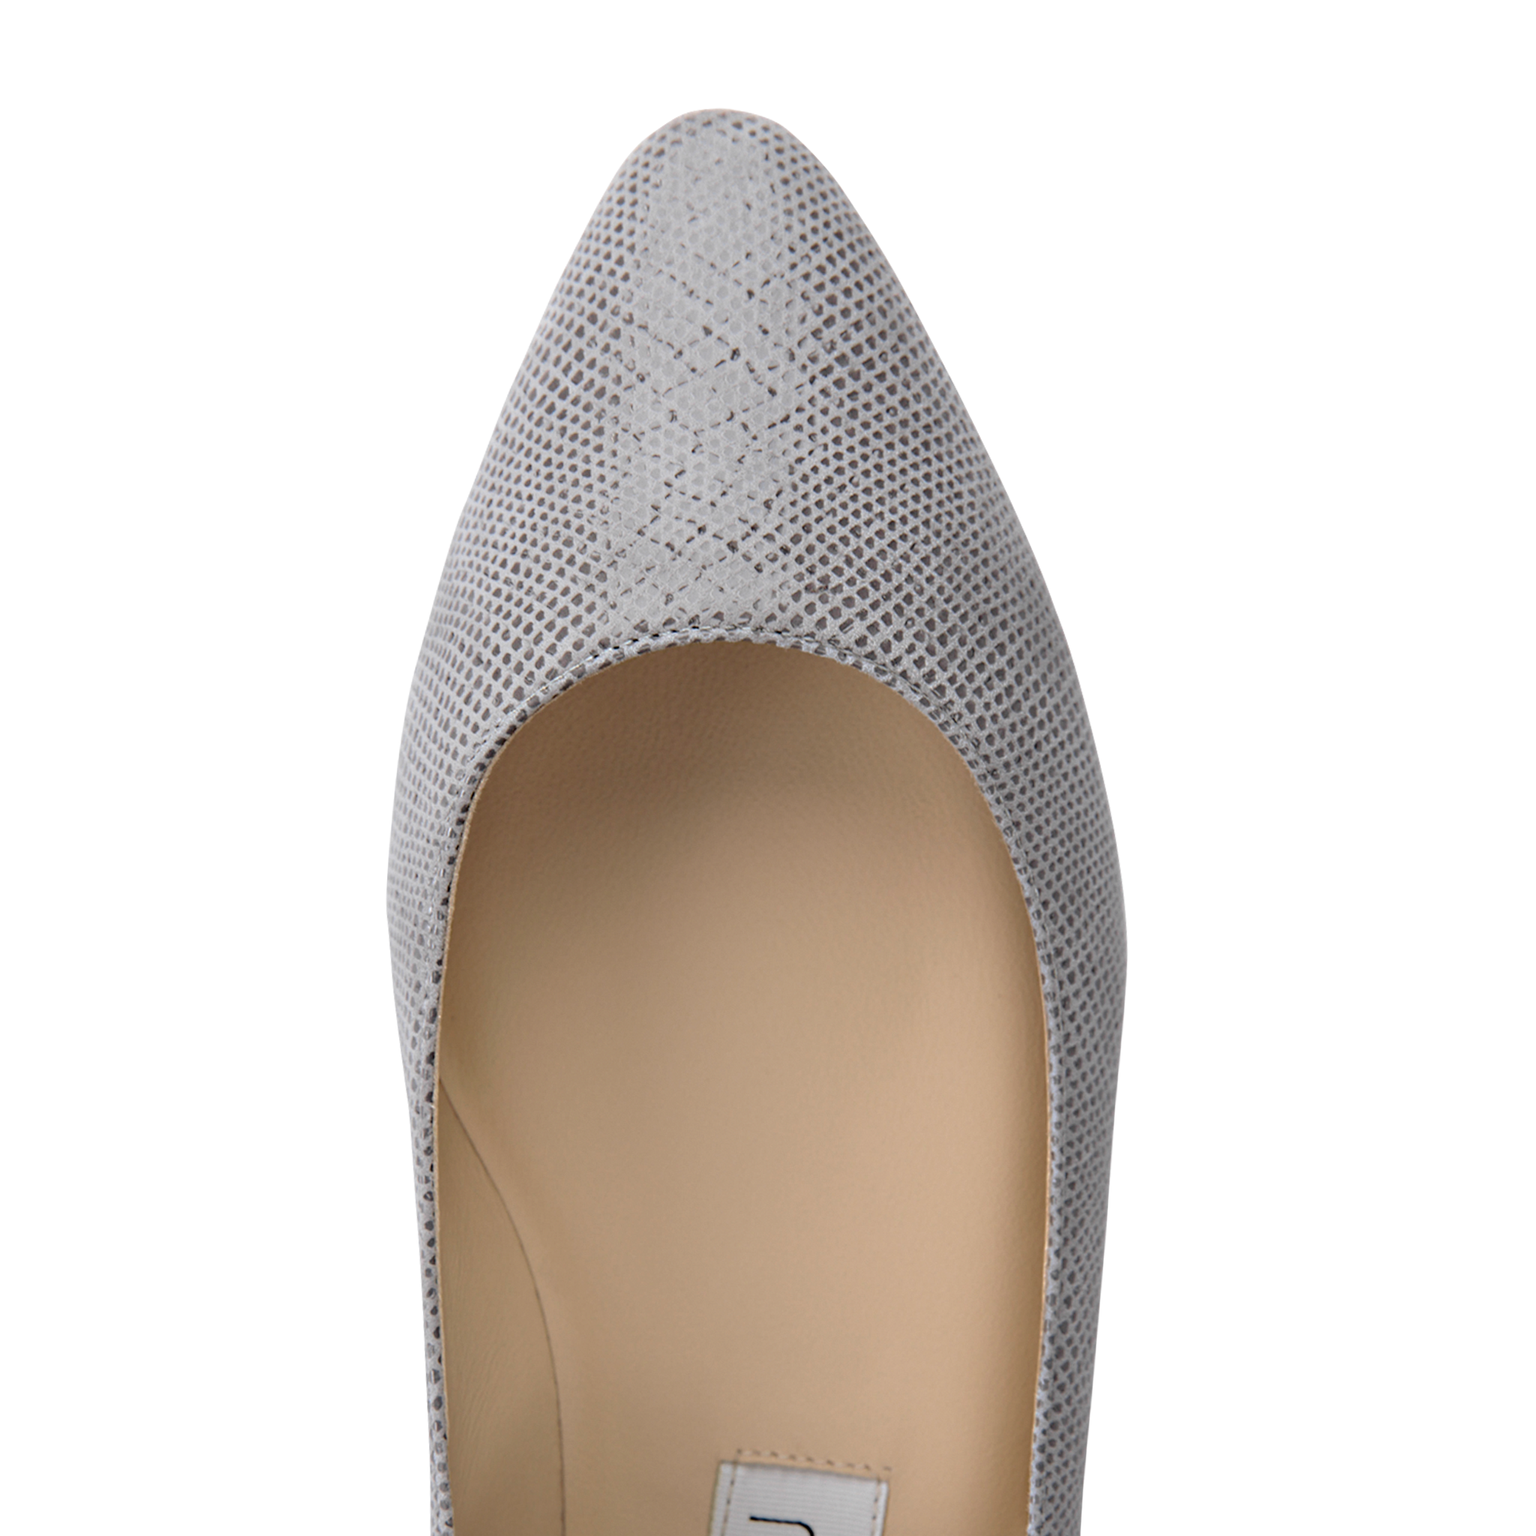 SIENA - Karung Grigio + Metallic Argento, VIAJIYU - Women's Hand Made Sustainable Luxury Shoes. Made in Italy. Made to Order.